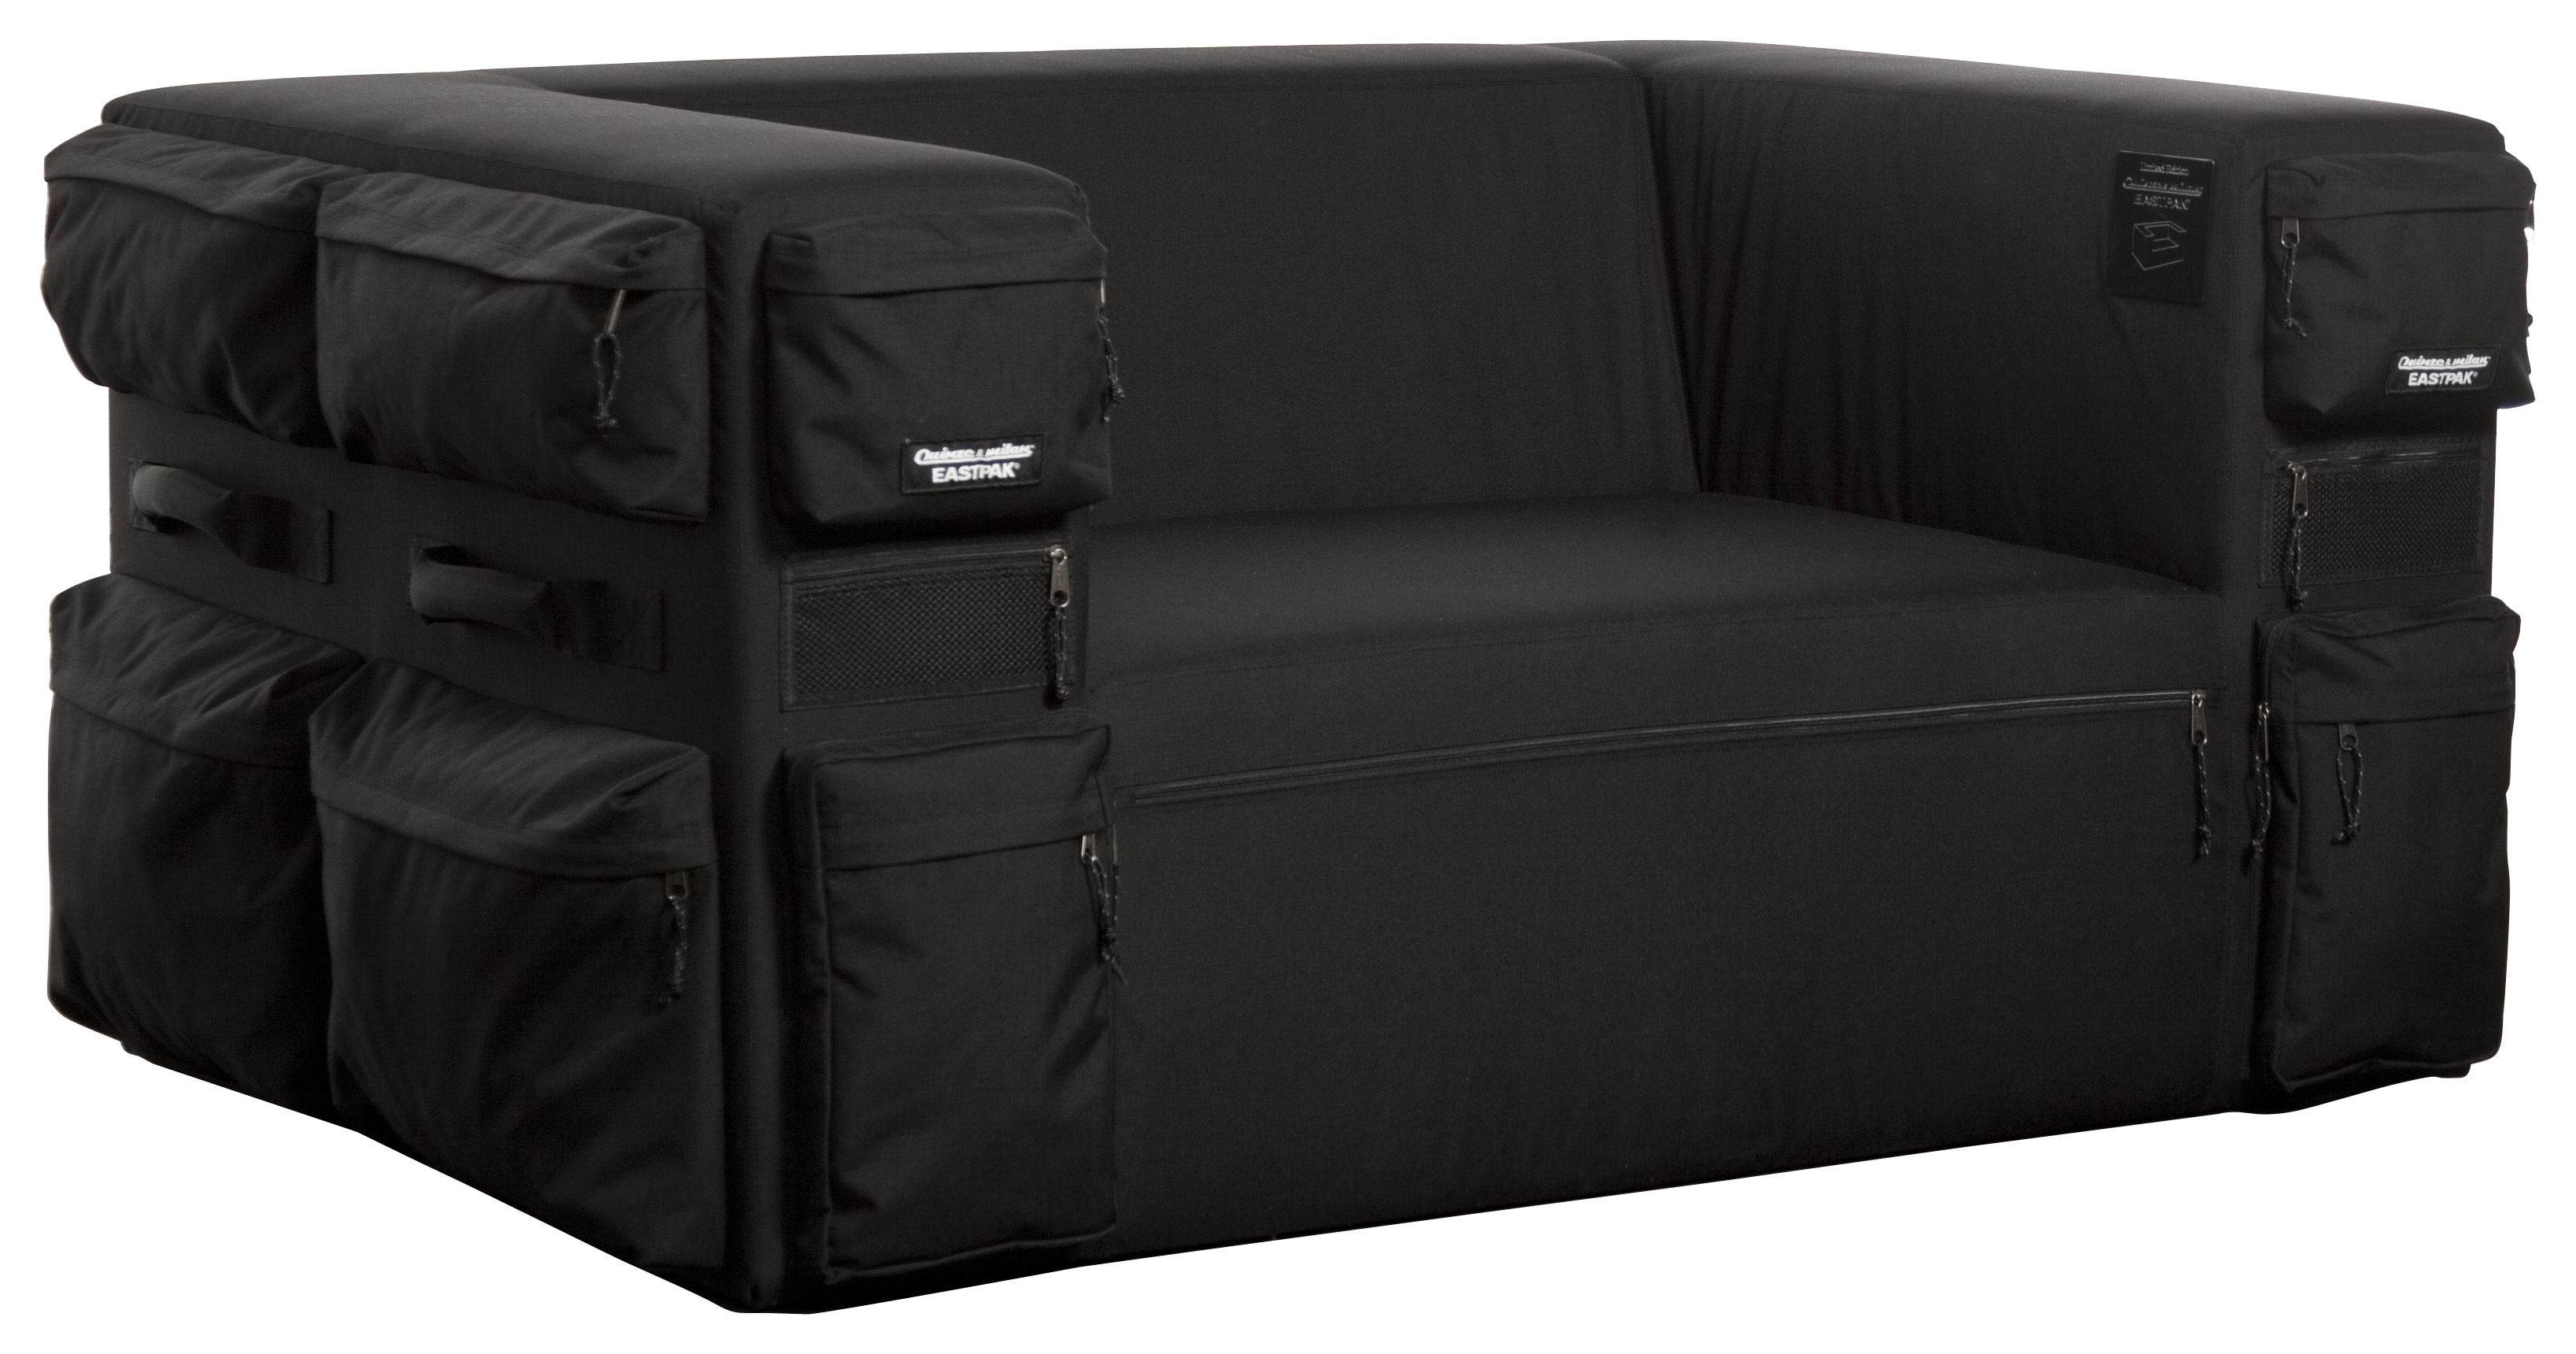 eastpack sofa flexsteel leather price canapé droit club 01 eastpak l 142 cm noir